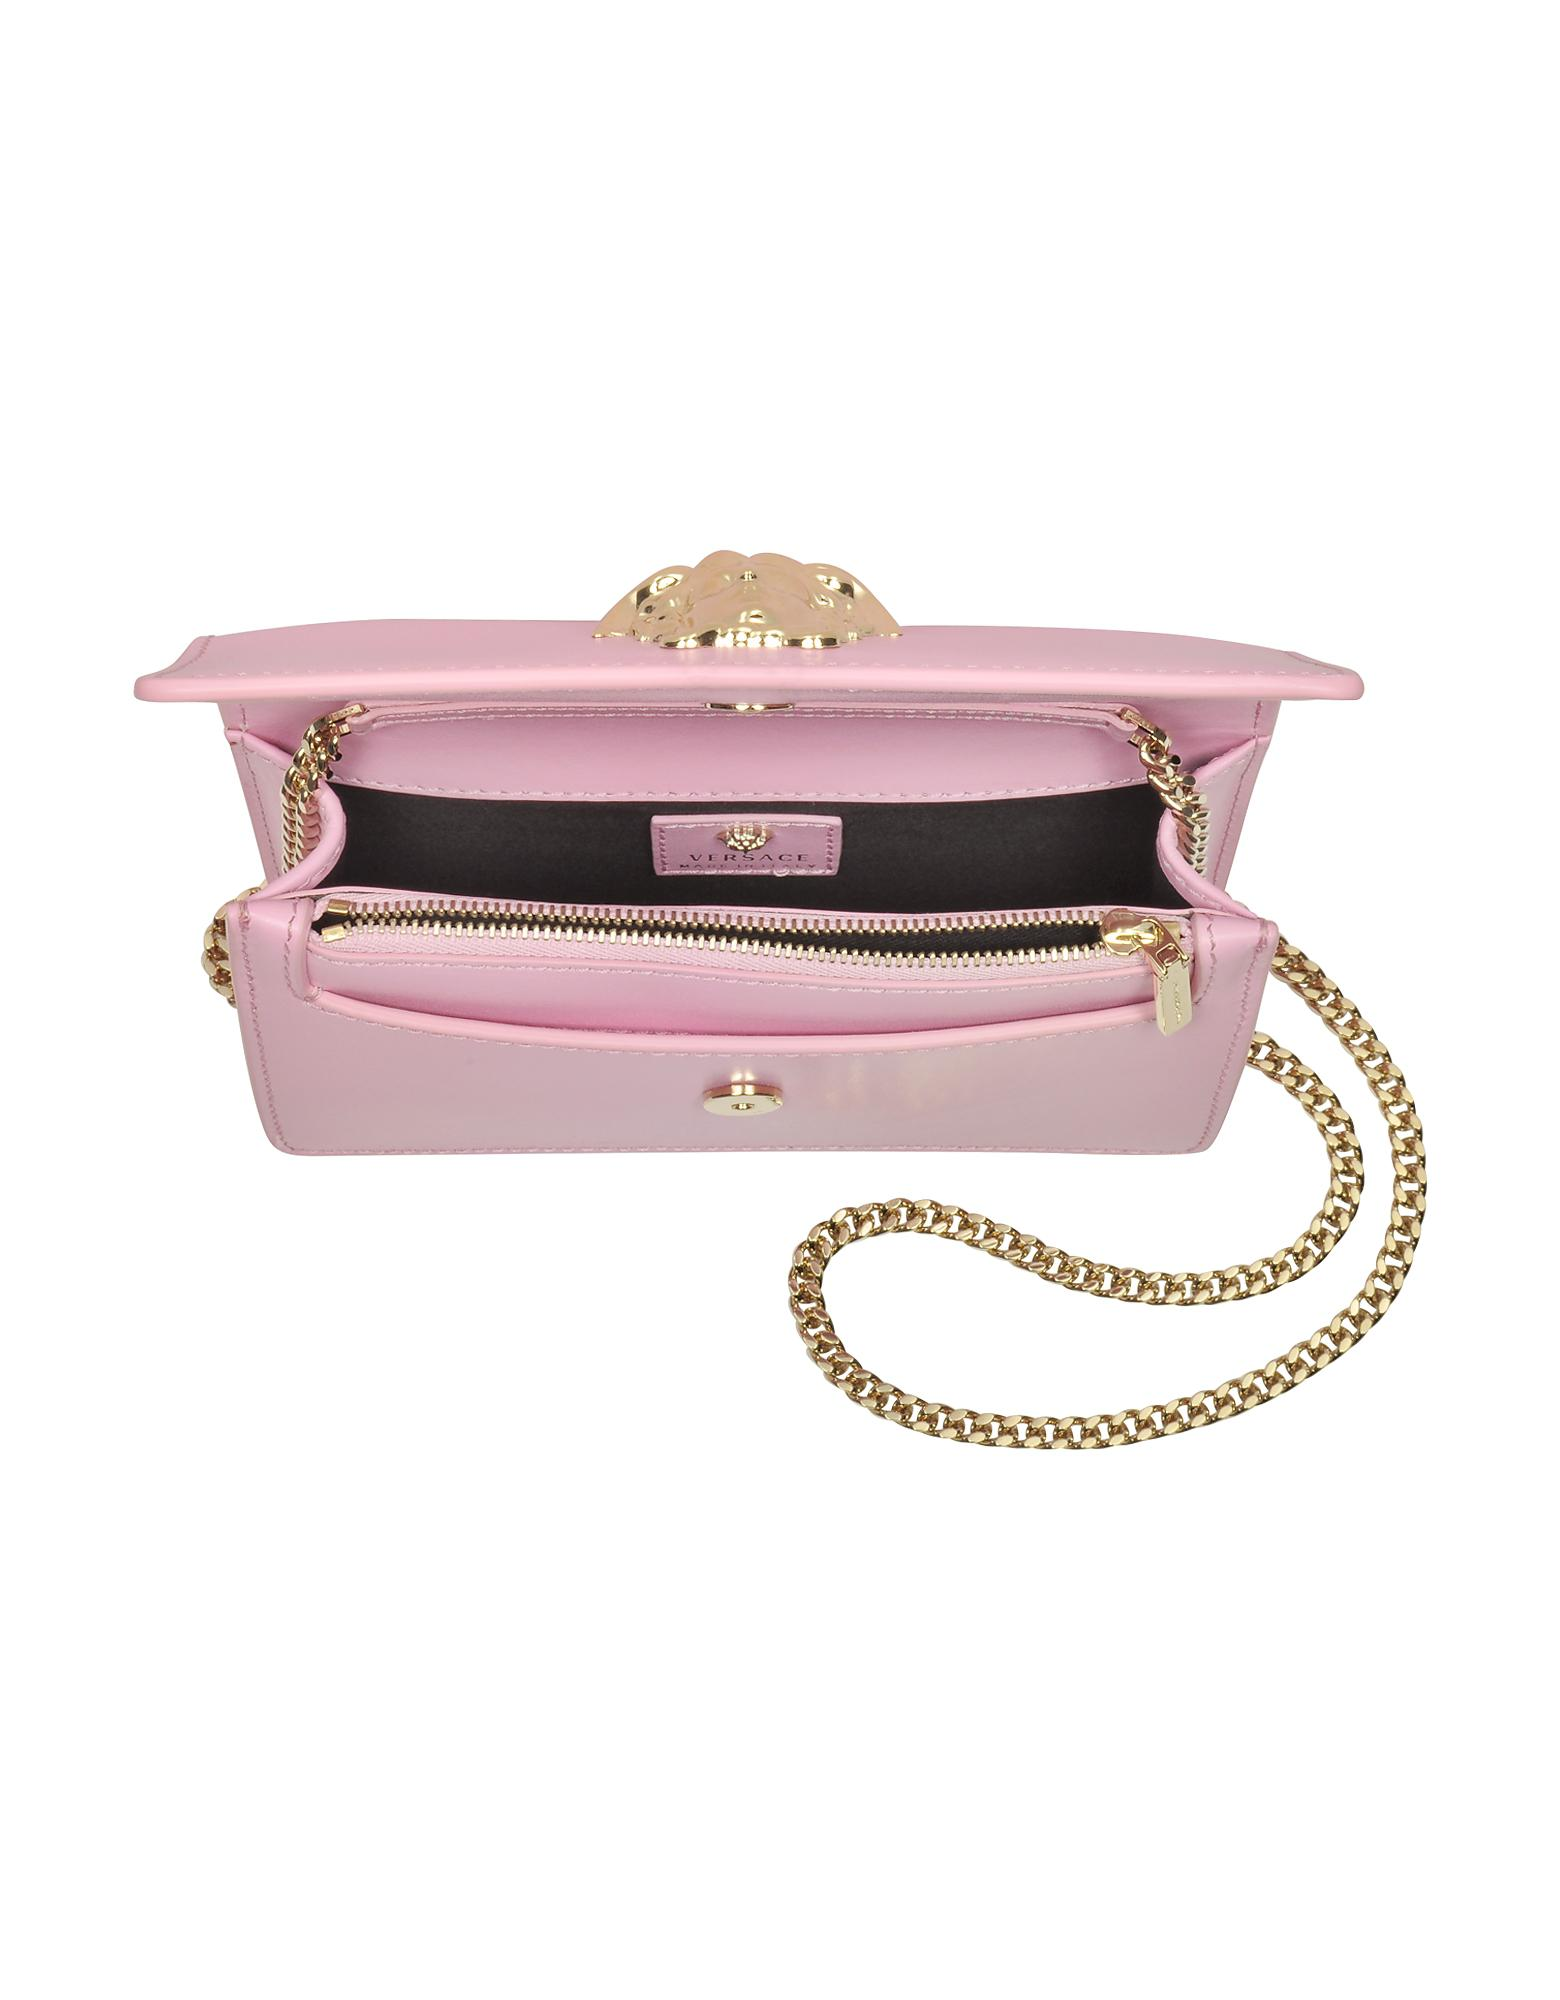 Lyst - Versace Palazzo Pink Leather Small Pouch in Pink d21a835a0cc56